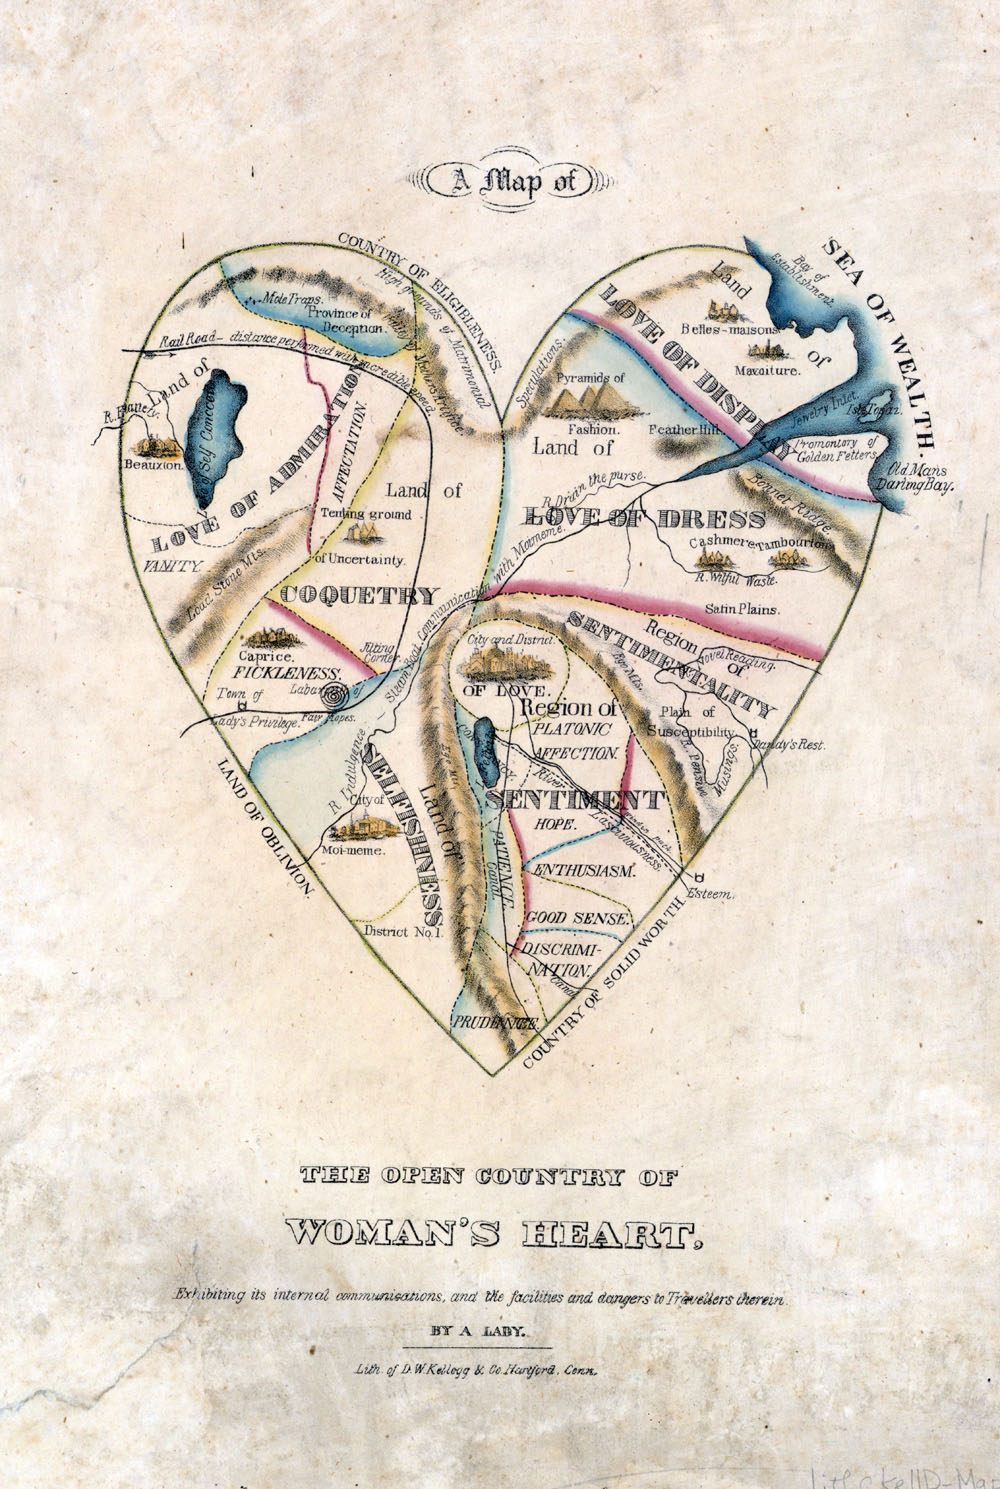 A Map of the Open Country of a Woman's Heart by D. W. Kellogg circa 1833-1842